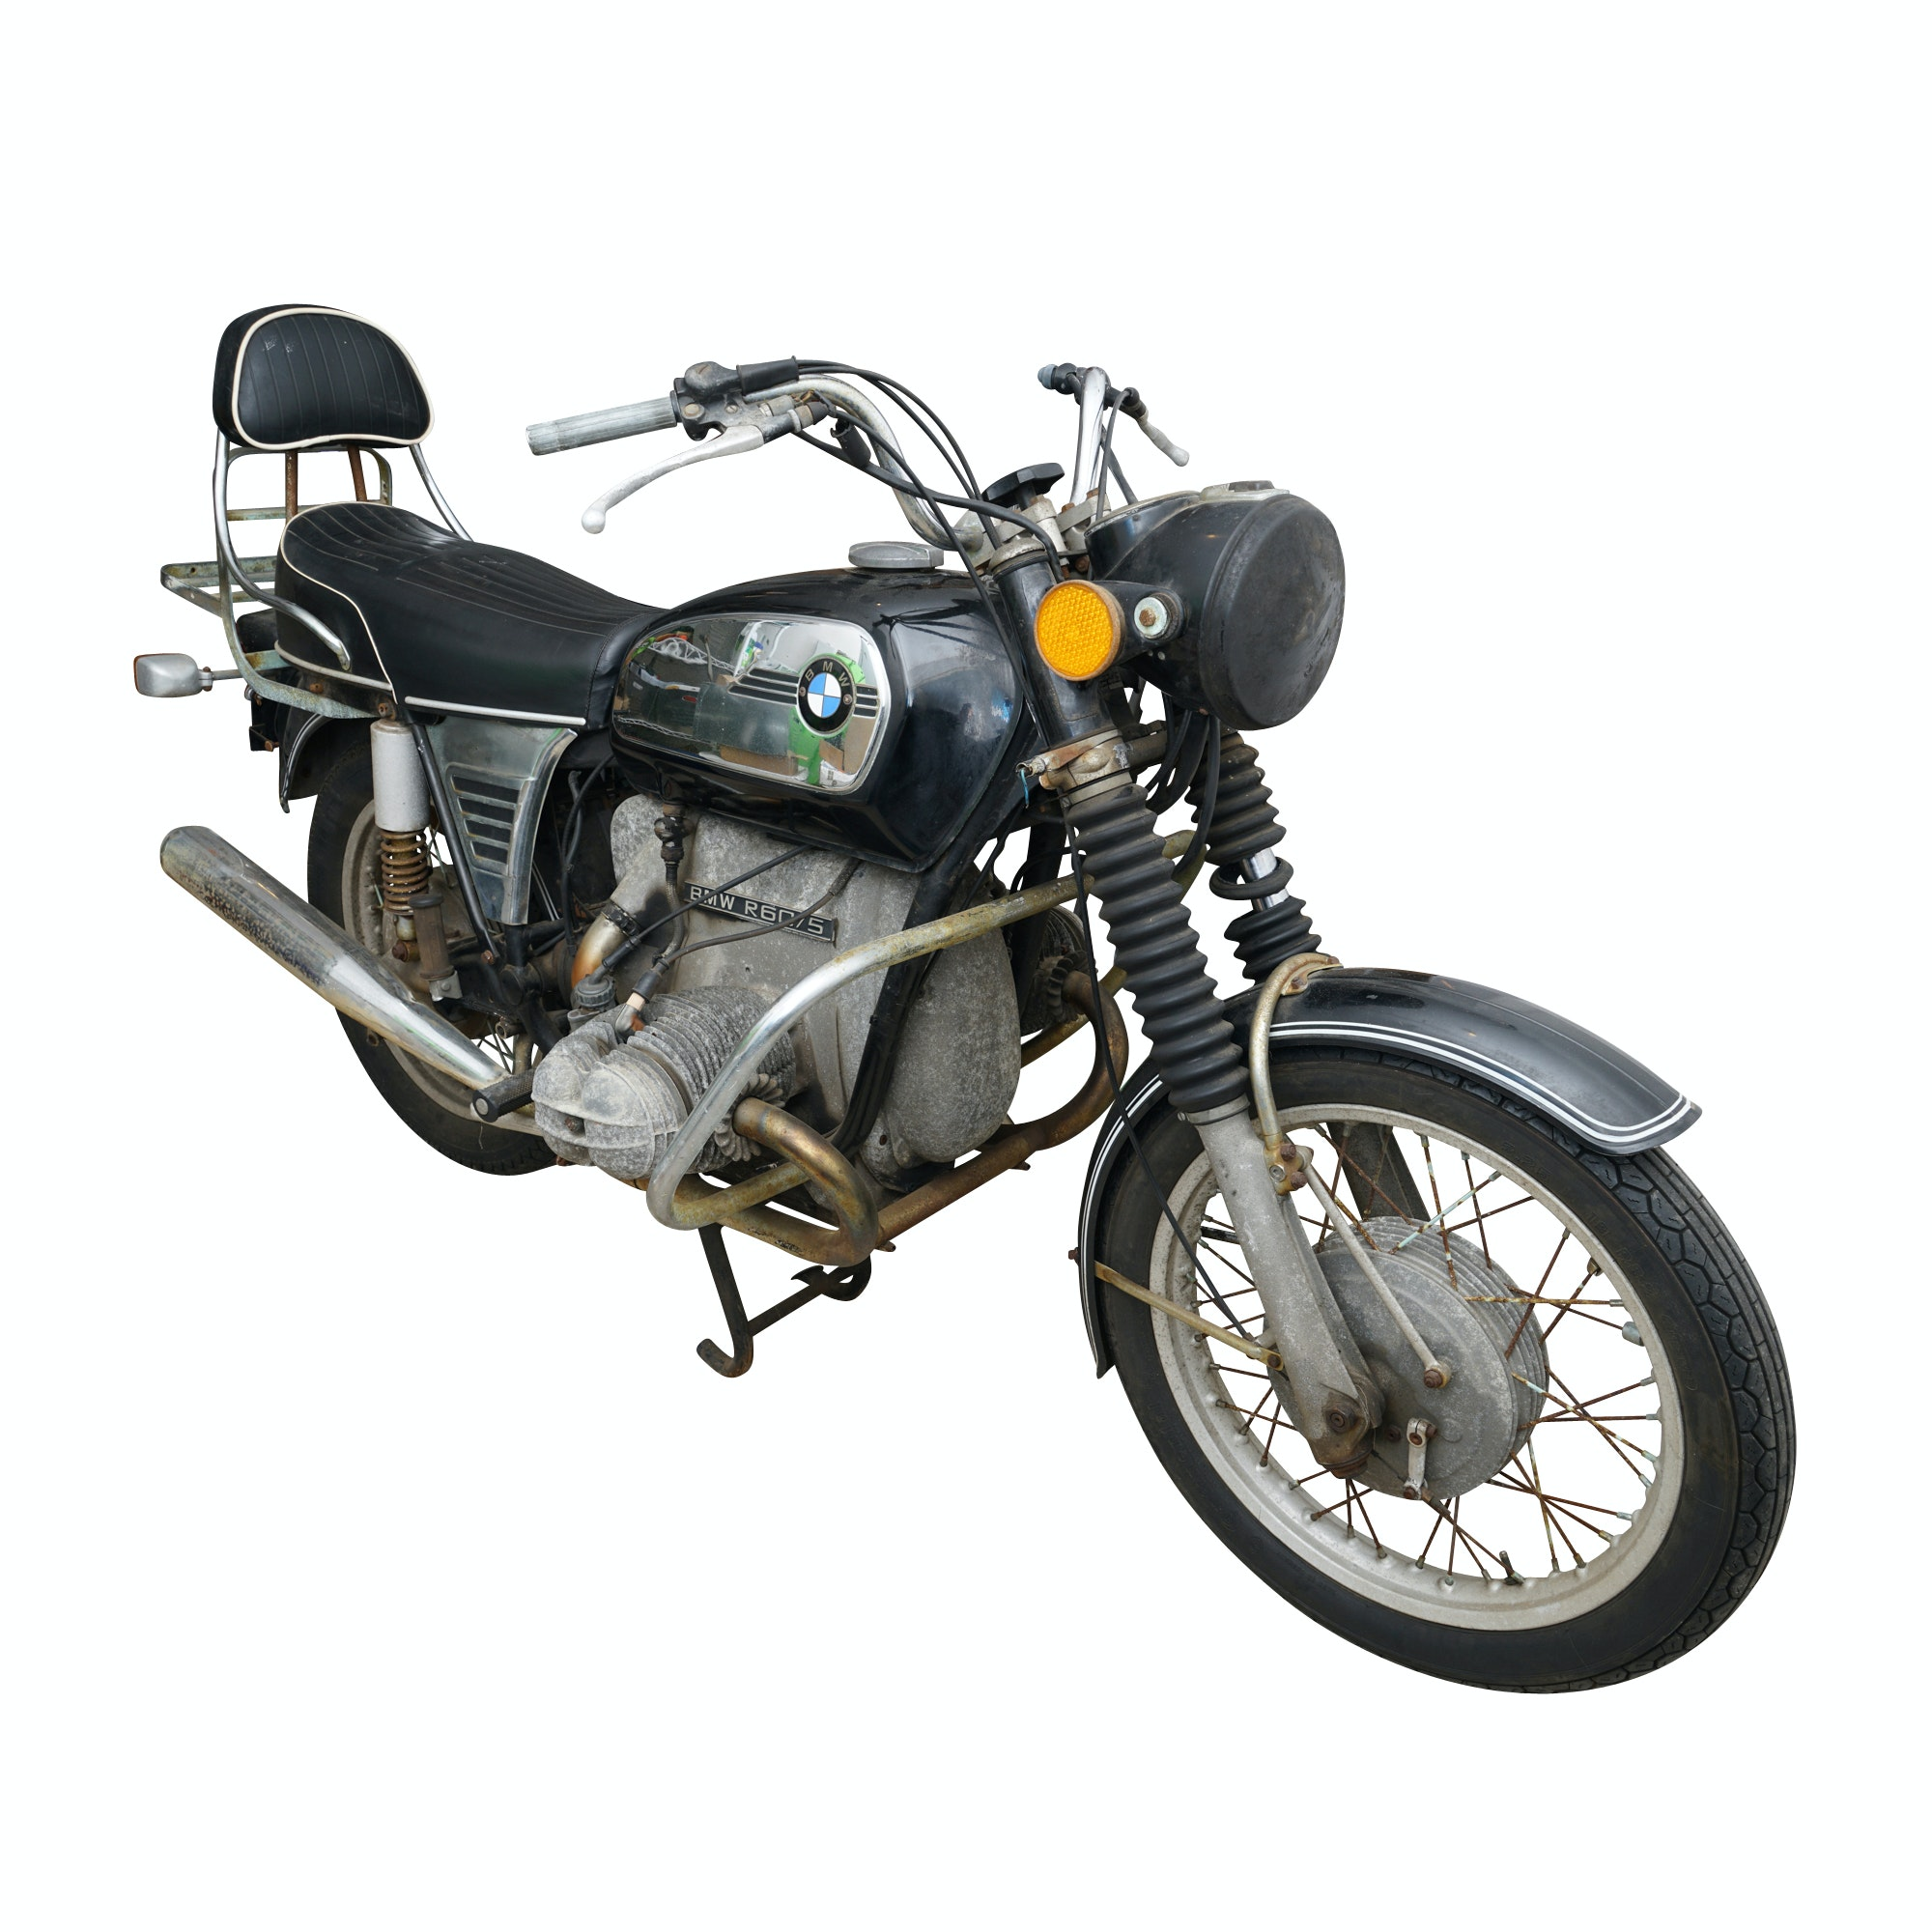 1973 BMW R60/5 Motorcycle